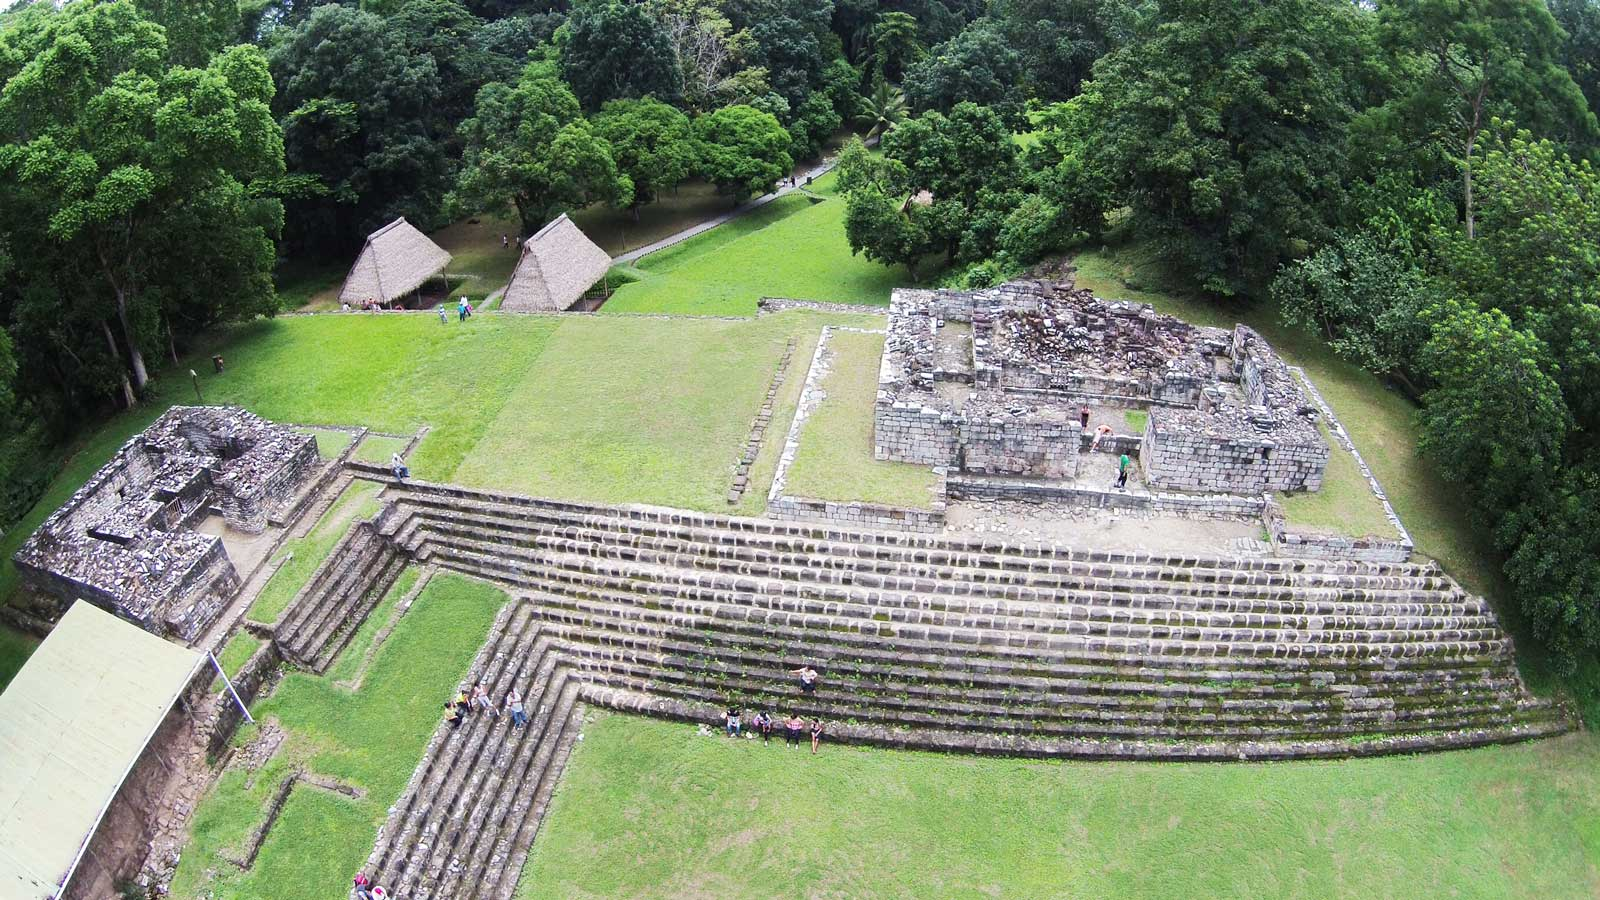 Aerial view of the central ceremonial area of Quiriguá, Guatemala